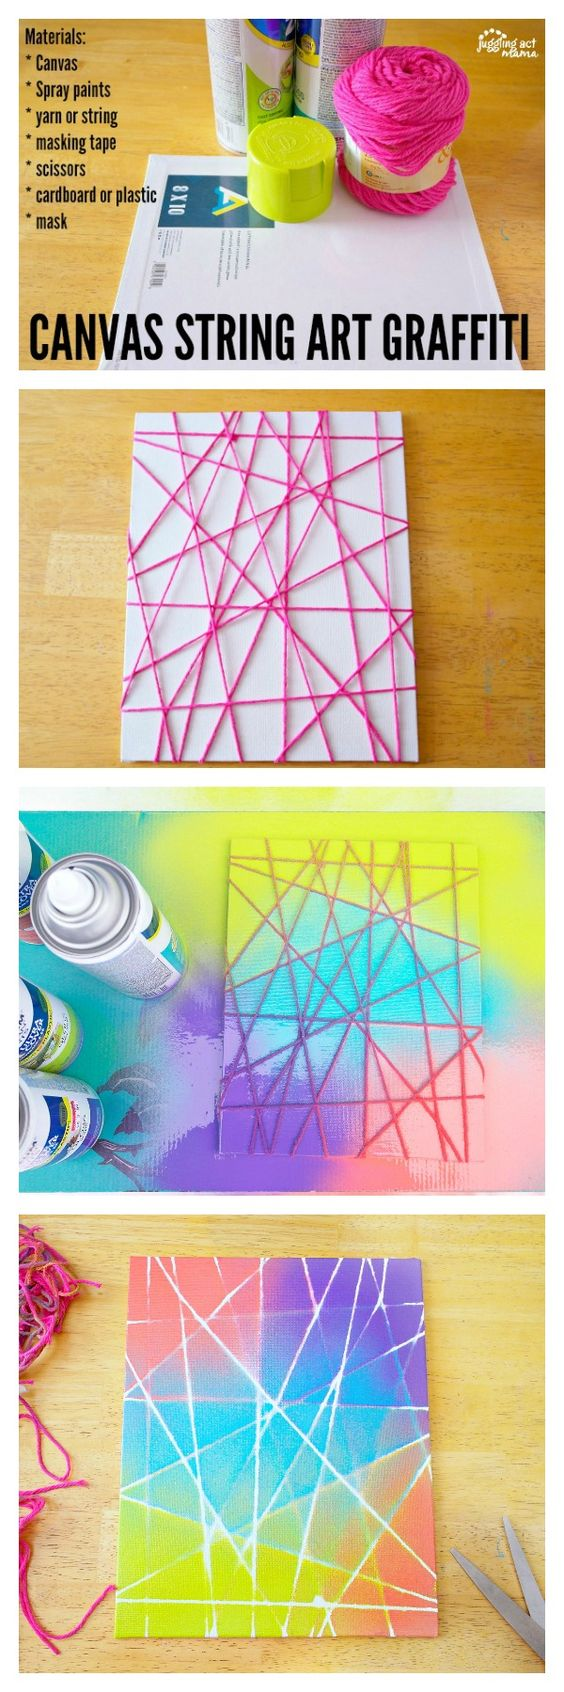 Canvas String Art Graffiti.